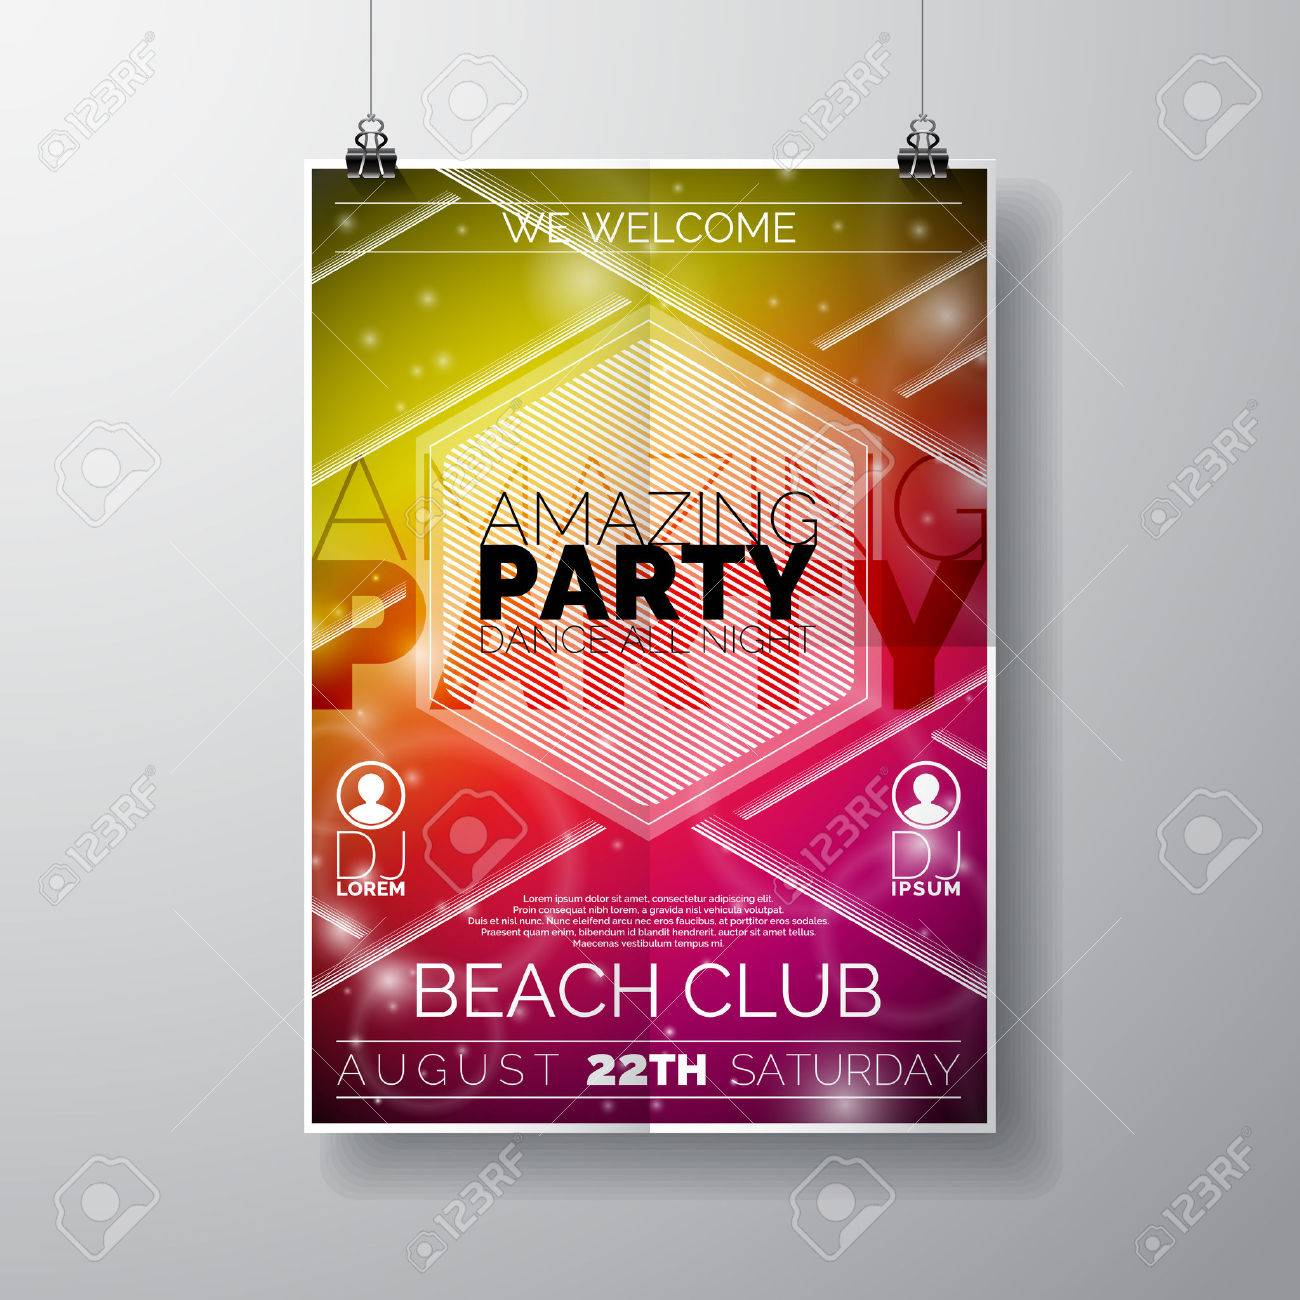 Vector Party Flyer Poster Template On Summer Beach Theme With ...